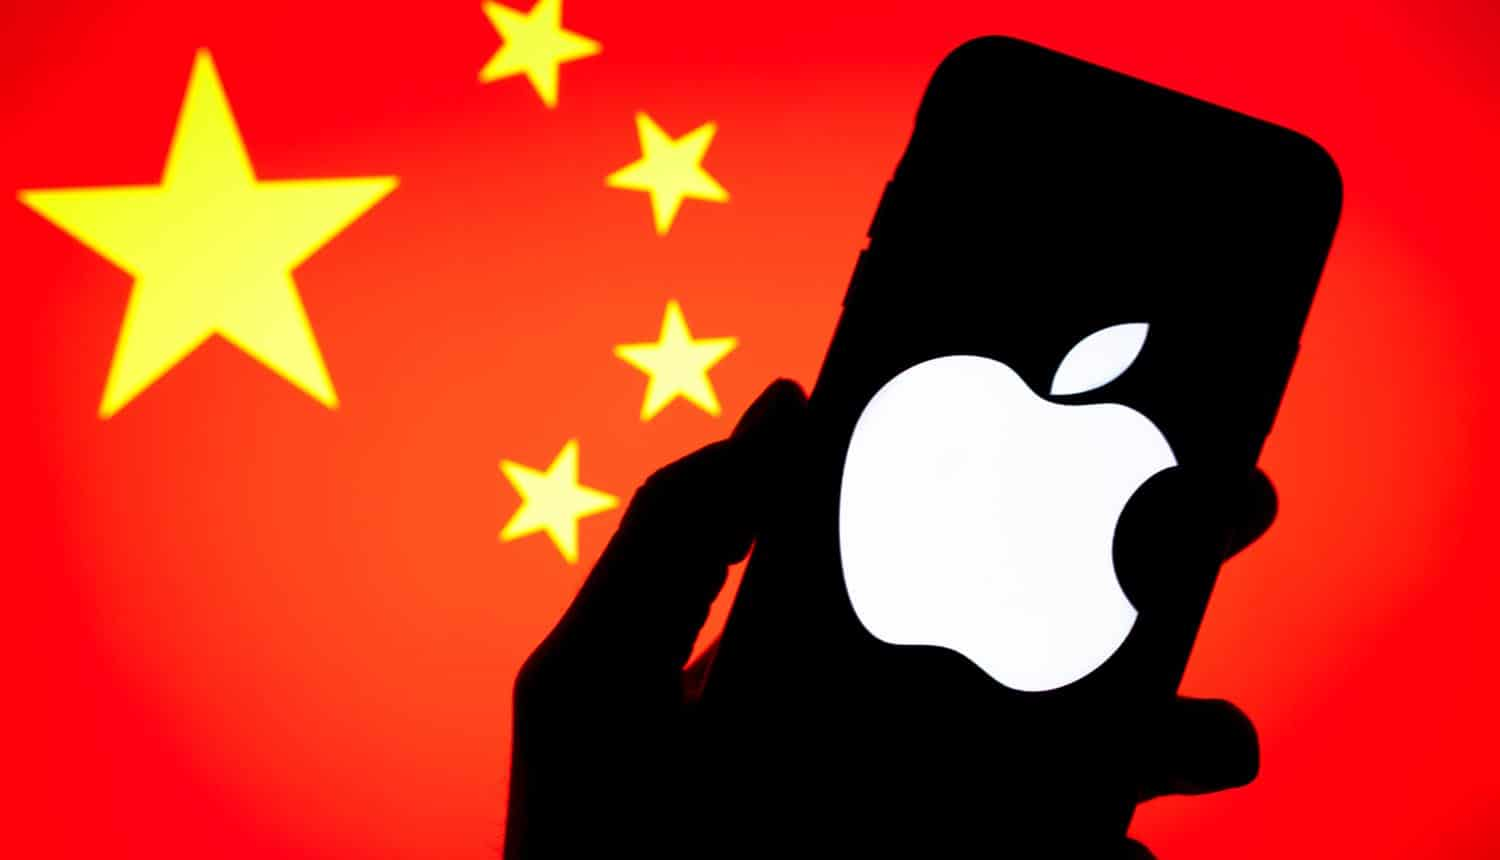 Apple logo on a smartphone screen against the background of the flag of China showing Apple's new human rights policy